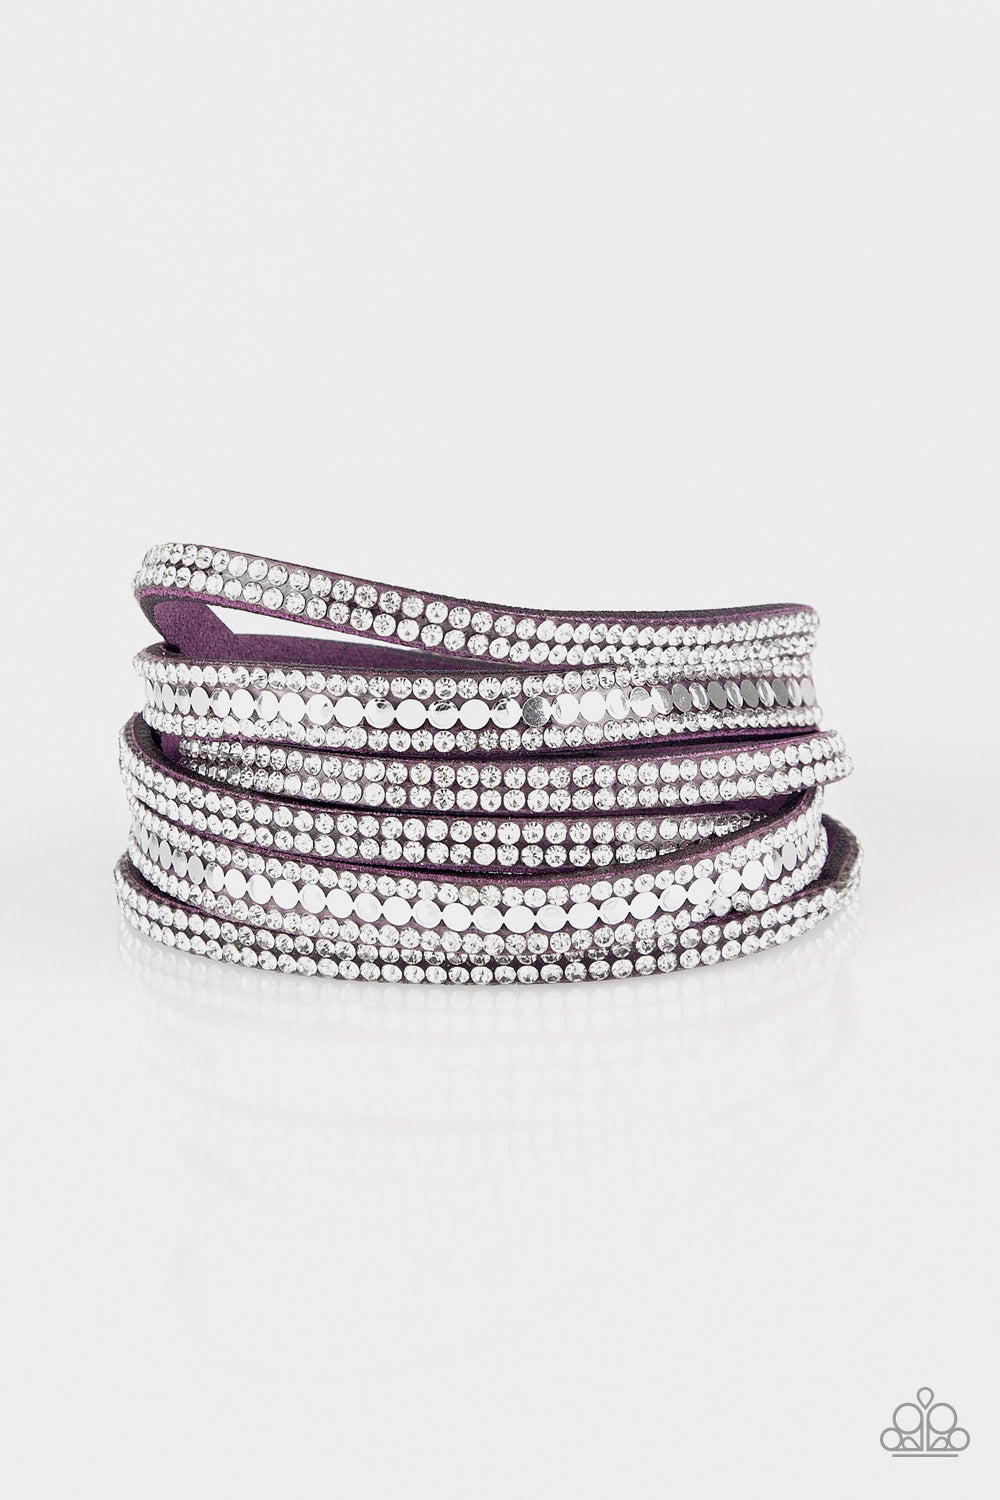 five-dollar-jewelry-rock-star-attitude-purple-bracelet-paparazzi-accessories